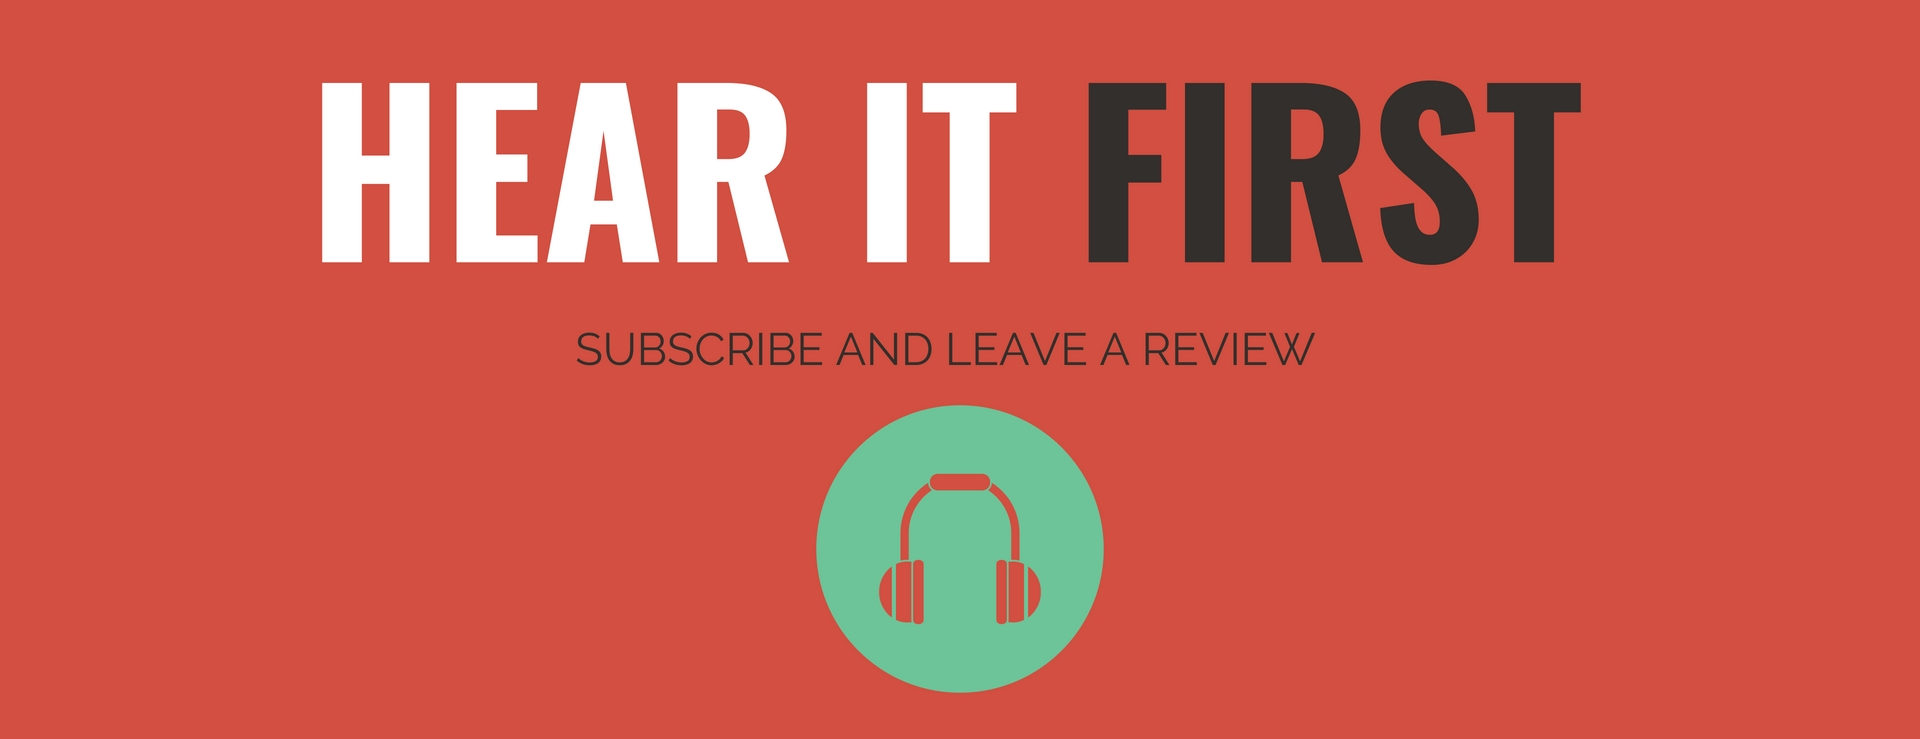 HEAR IT FIRST- SUBSCRIBE AND LEAVE A REVIEW